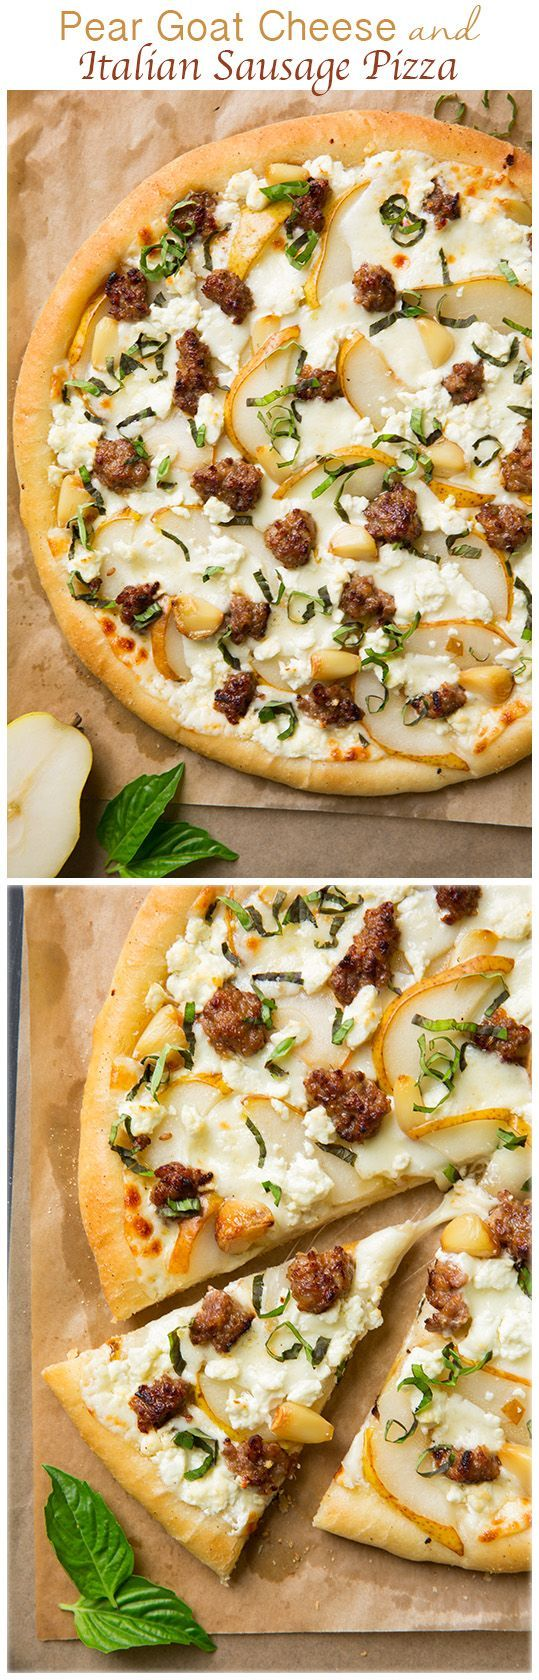 Pear Goat Cheese and Italian Sausage Pizza with Roasted Garlic and Fresh Basil Recipe via Cooking Classy - this pizza is out of this world AMAZING! If you like flavor you'll love this pizza!! The ultimate fall pizza.